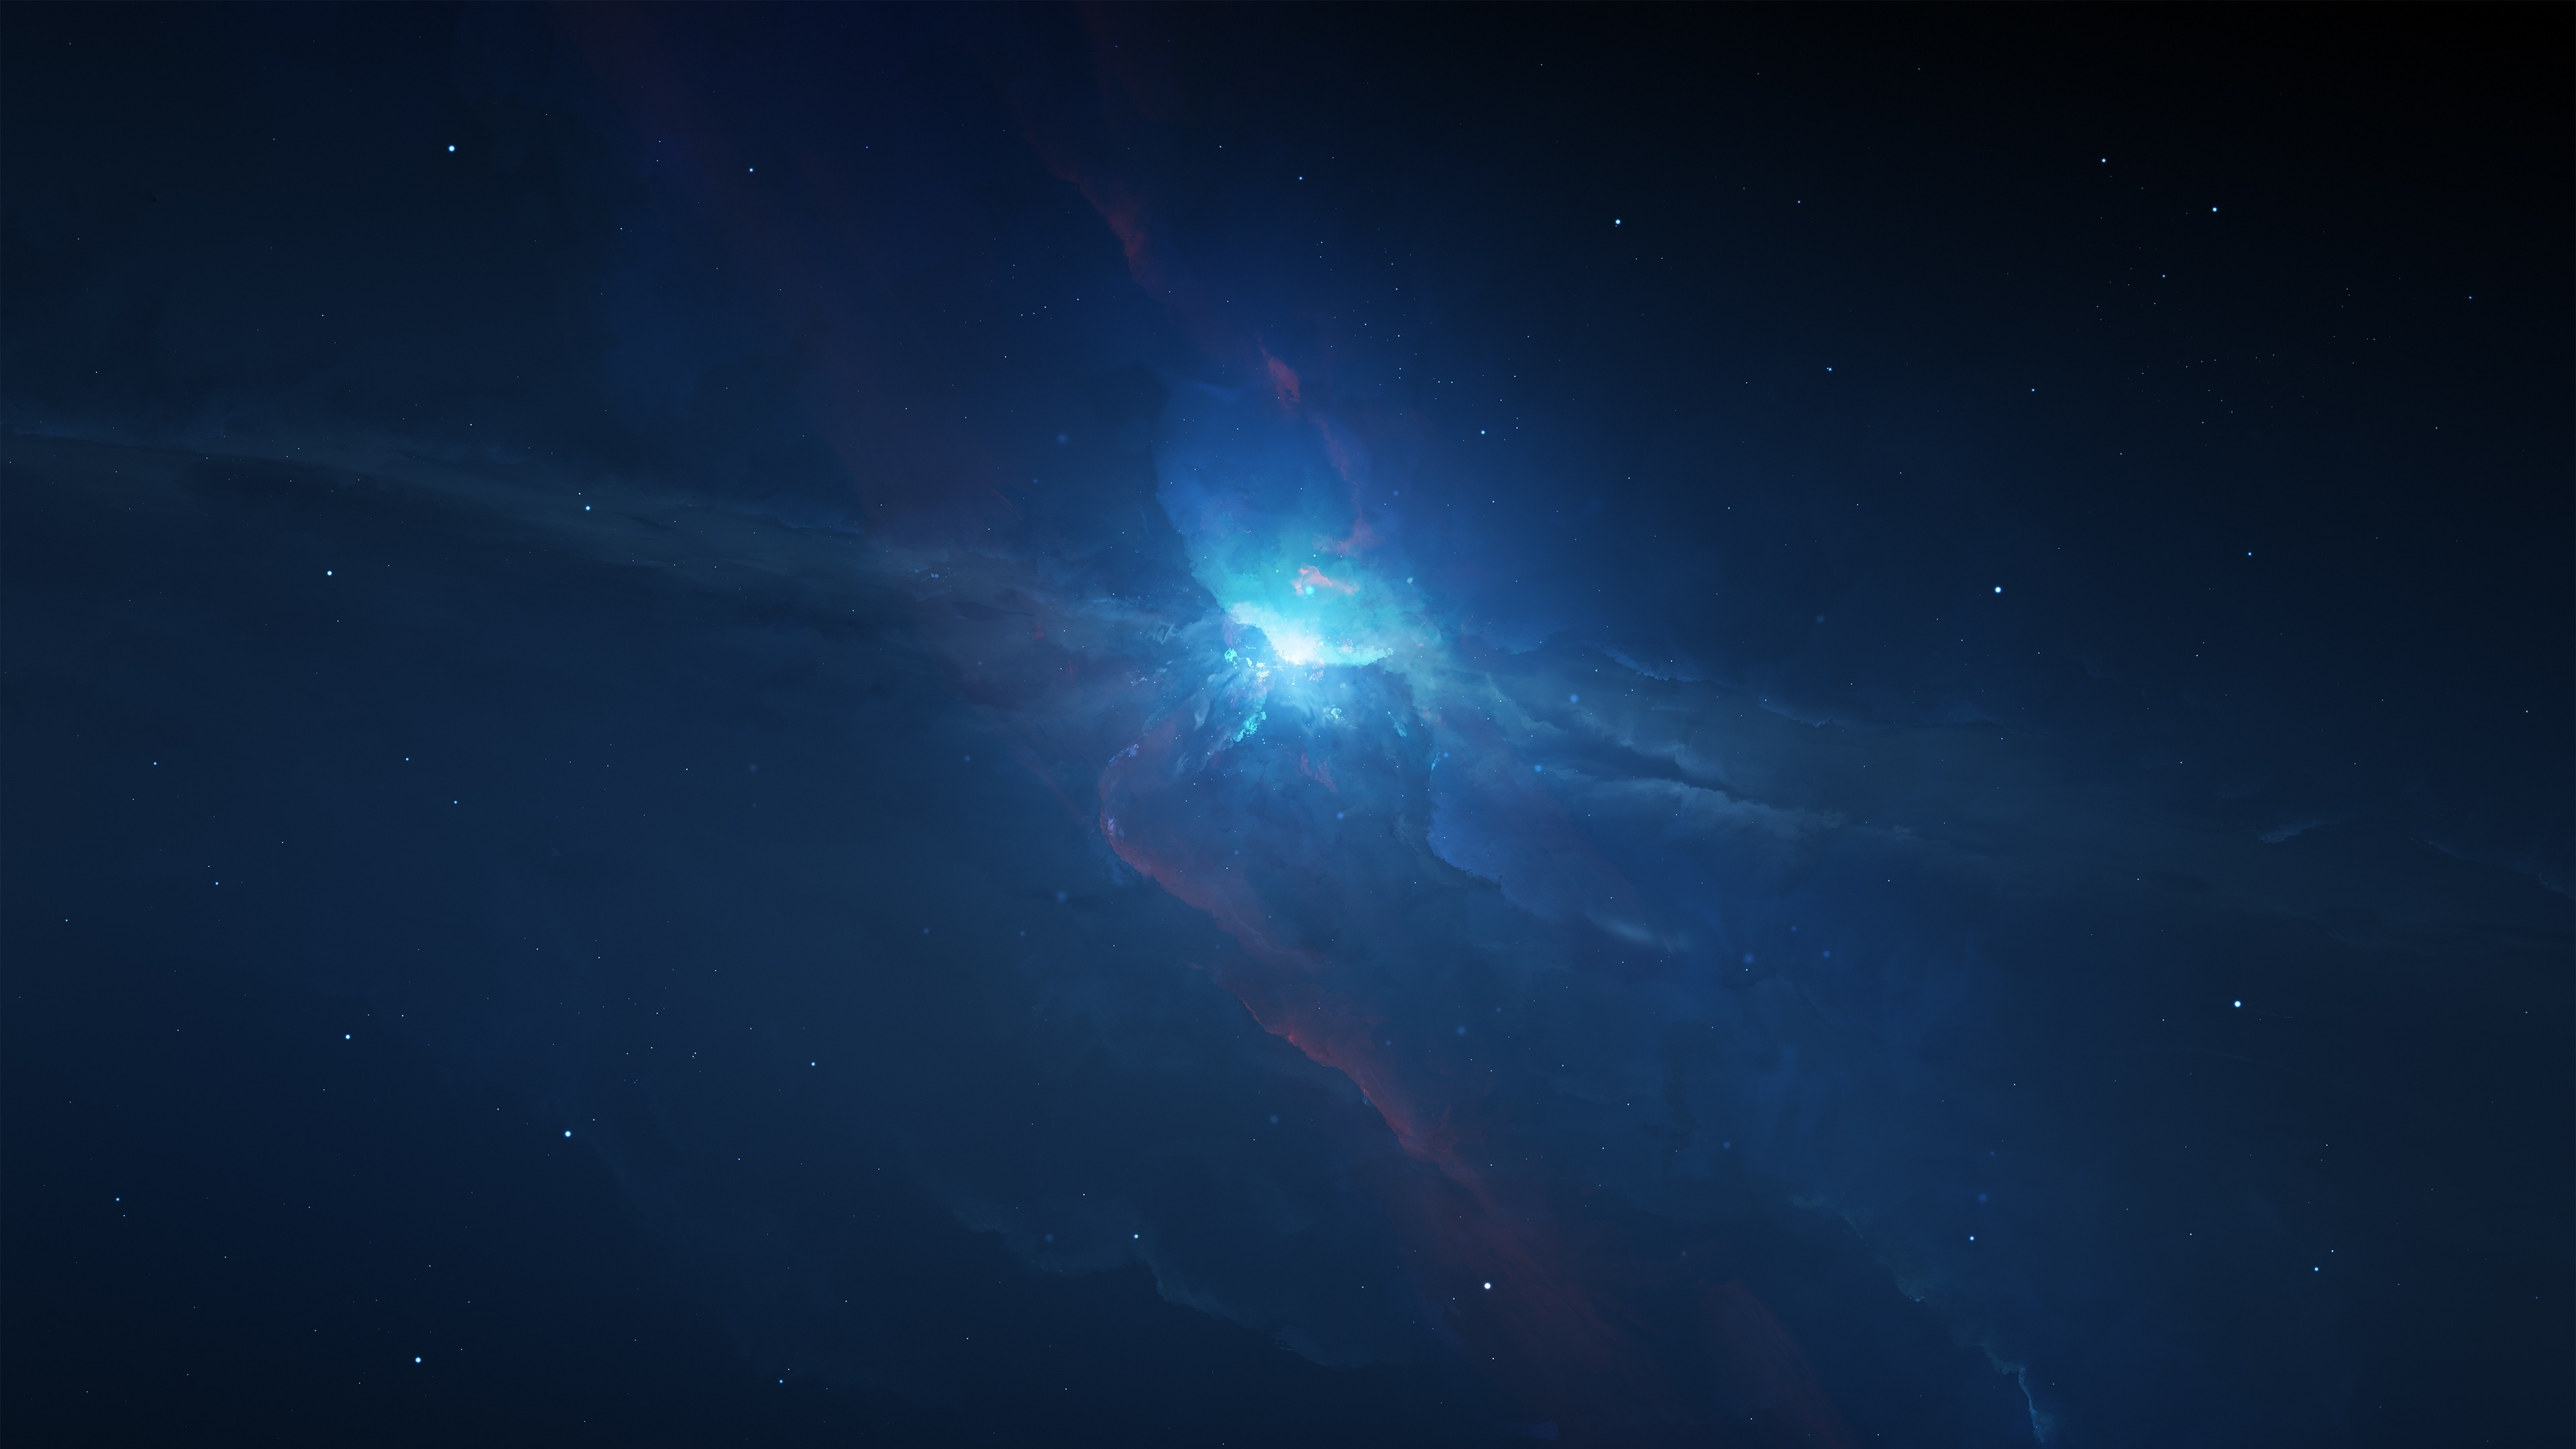 4K Space Wallpapers